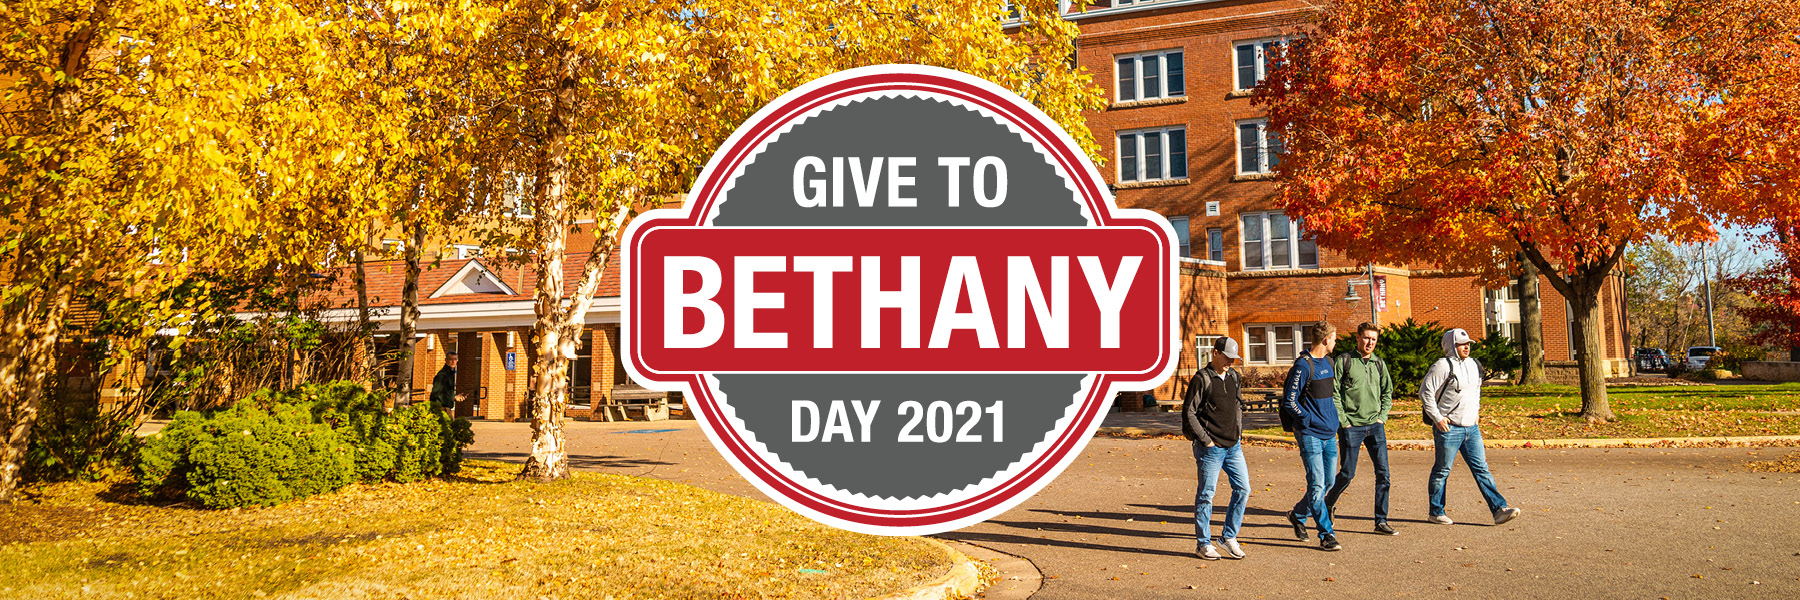 Give to Bethany Day 2021 text logo over photo of fall leaves and four male students walking, 2021